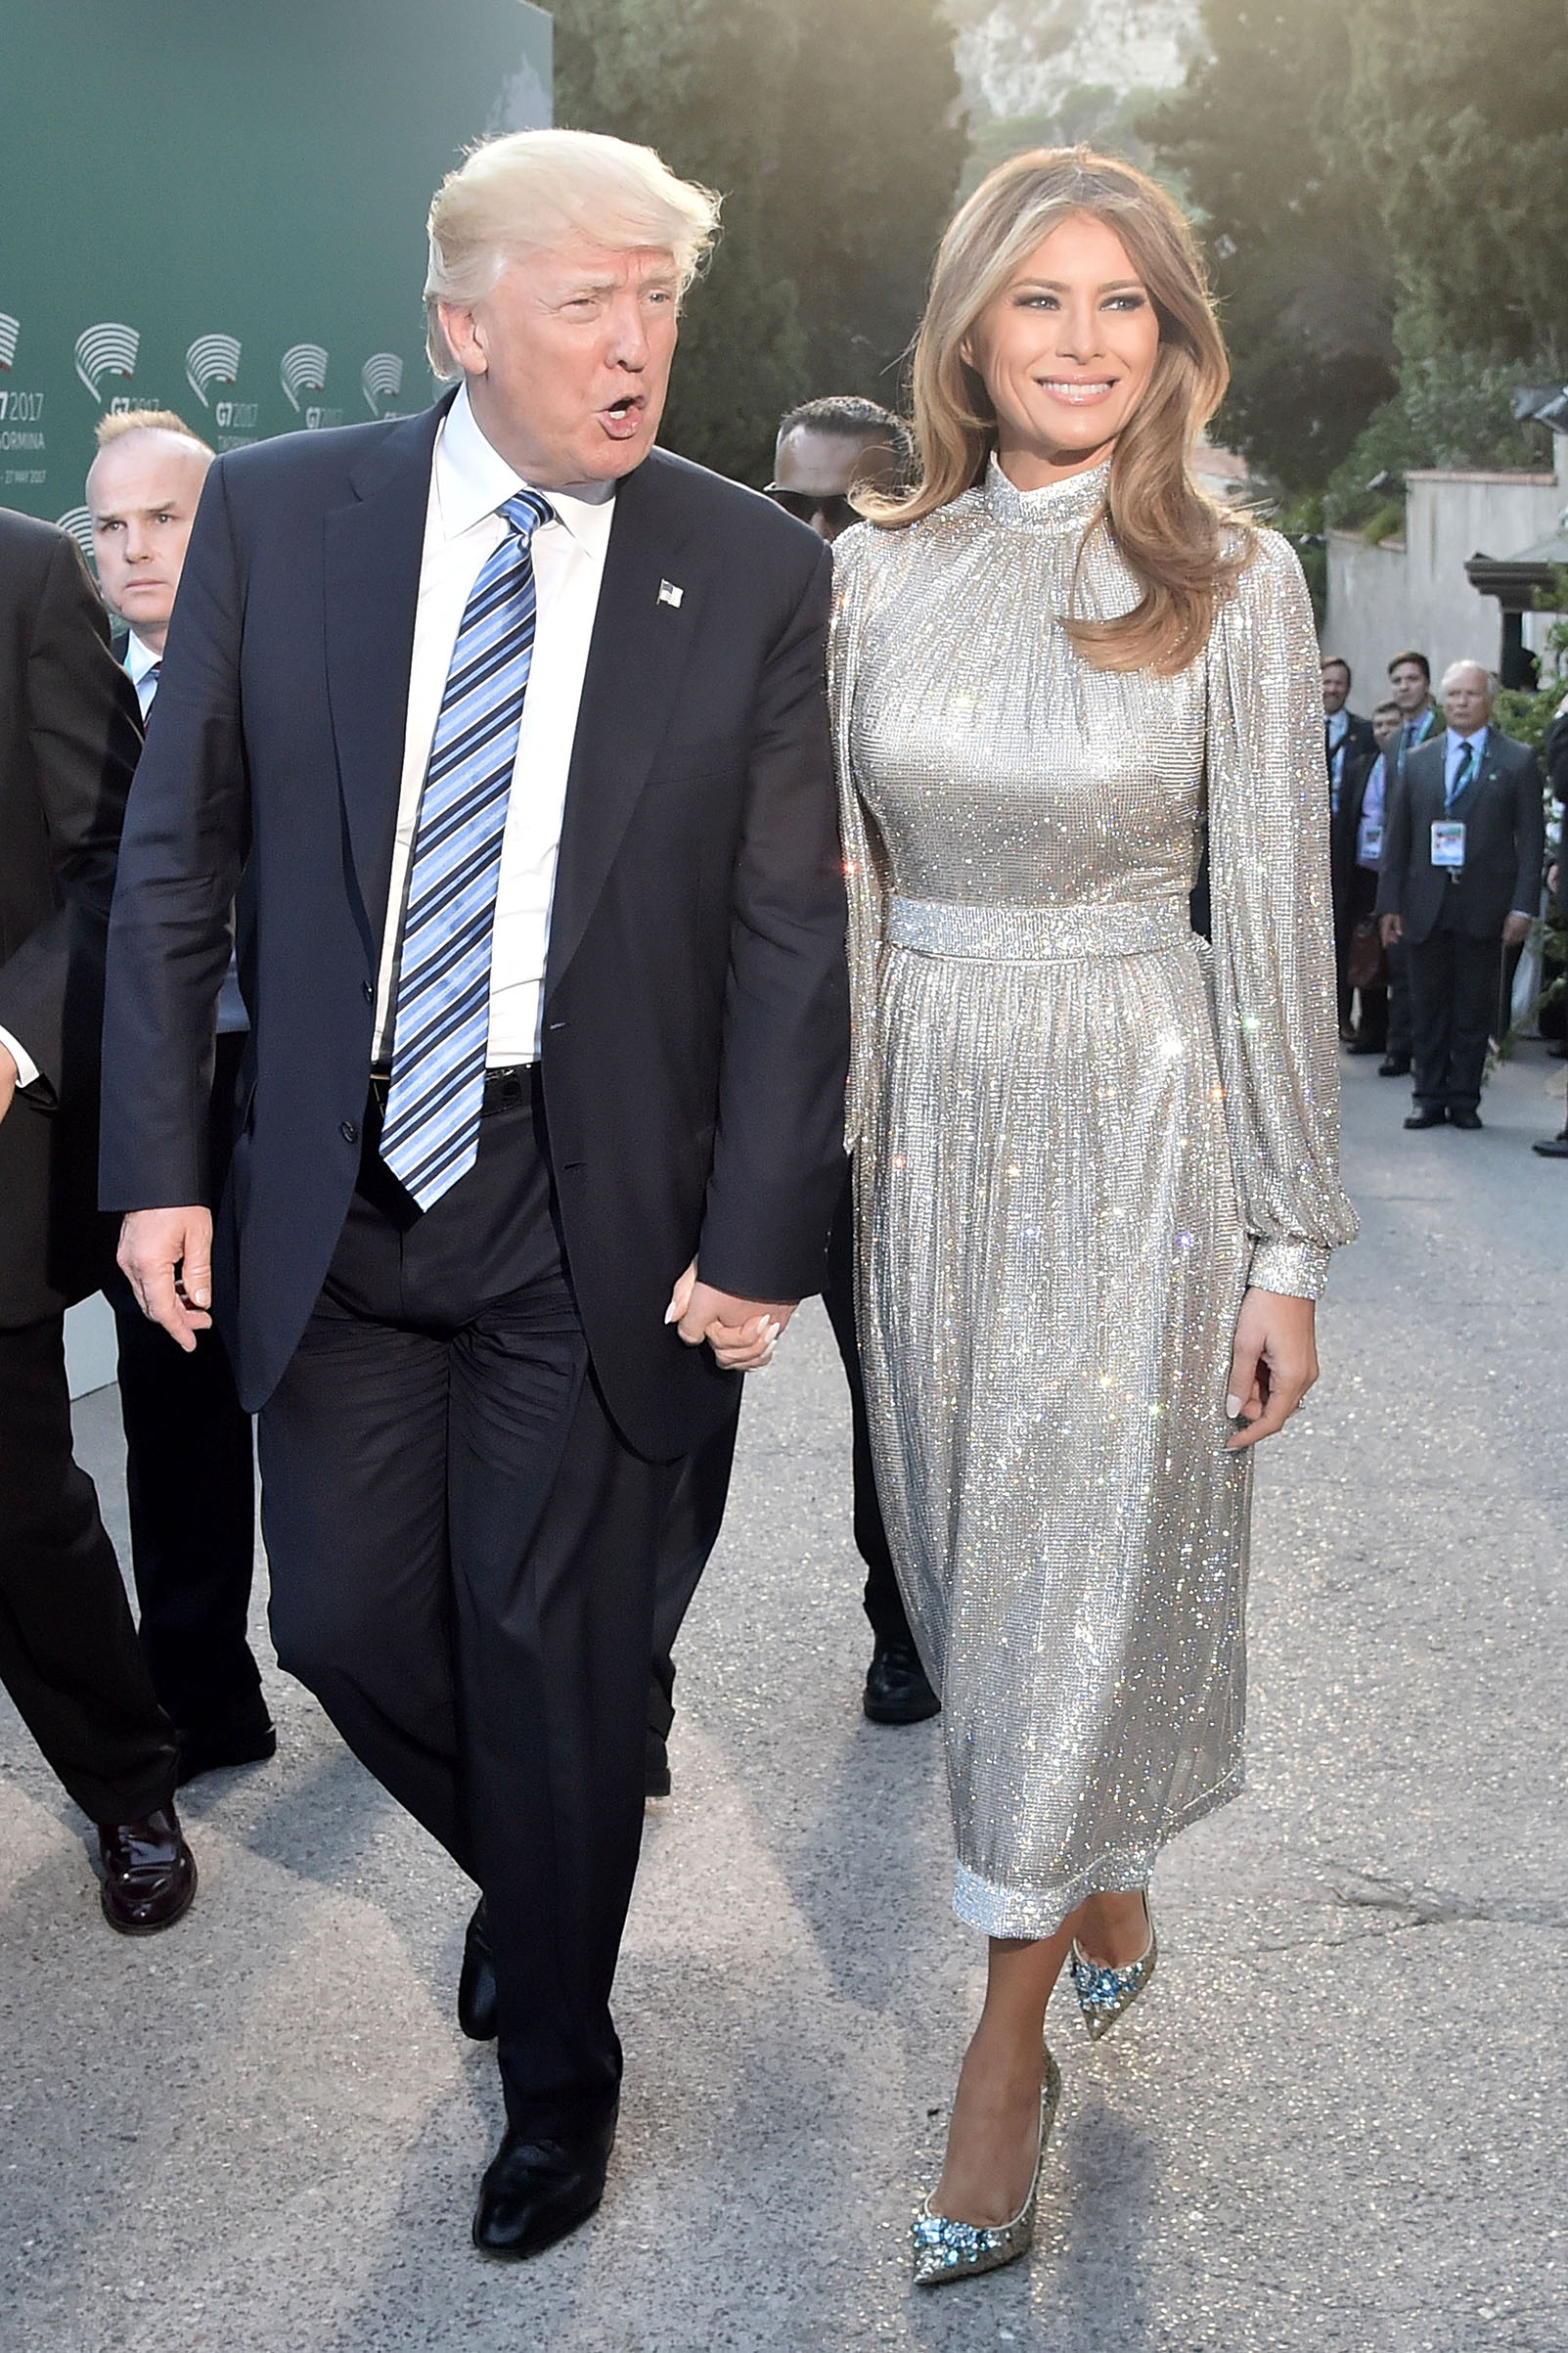 President Donald Trump and first lady Melania Trump wearing wearing a Dolce & Gabbana's glittering dress and silver shoes, hold hands as they arrive for a concert of La Scala Philharmonic Orchestra at the ancient Greek Theatre of Taormina during the Heads of State and of Government G7 summit, on May 26, 2017 in Sicily, Italy.